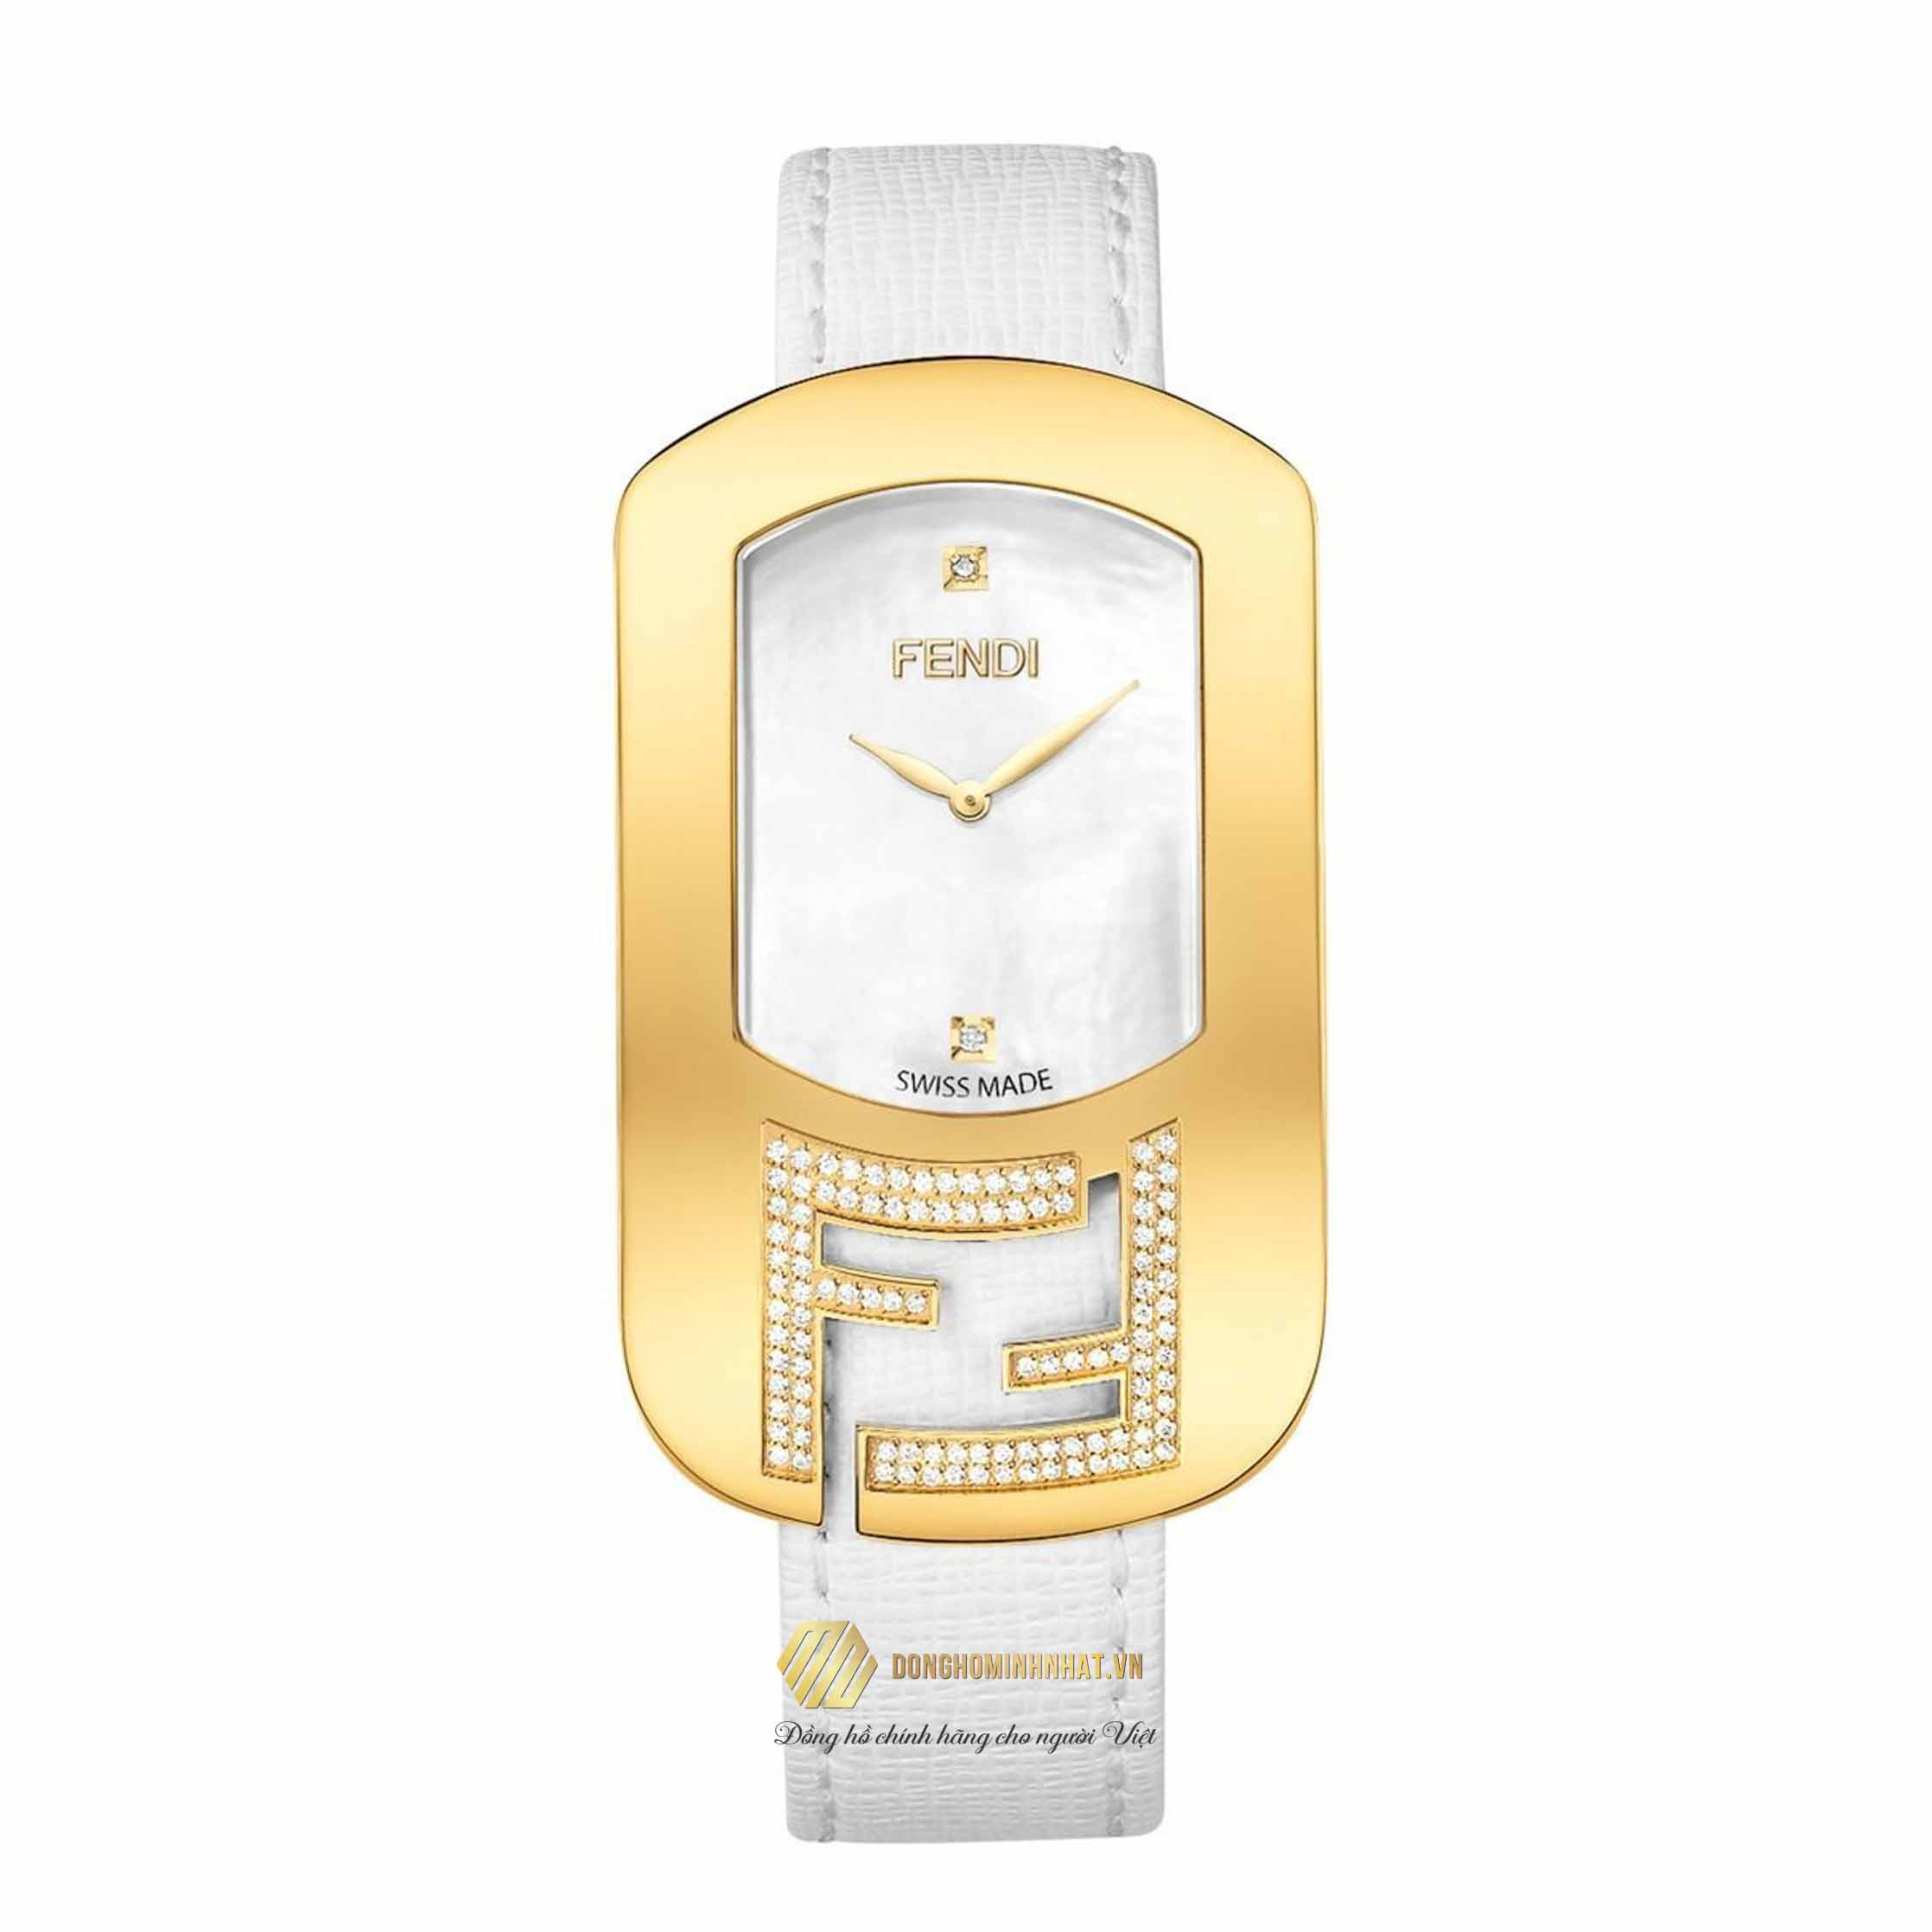 ĐỒNG HỒ Fendi Timepieces Women's Swiss Chameleon Diamond (1/4 ct. t.w.) White Leather Strap Watch 49x29mm F300434541C1